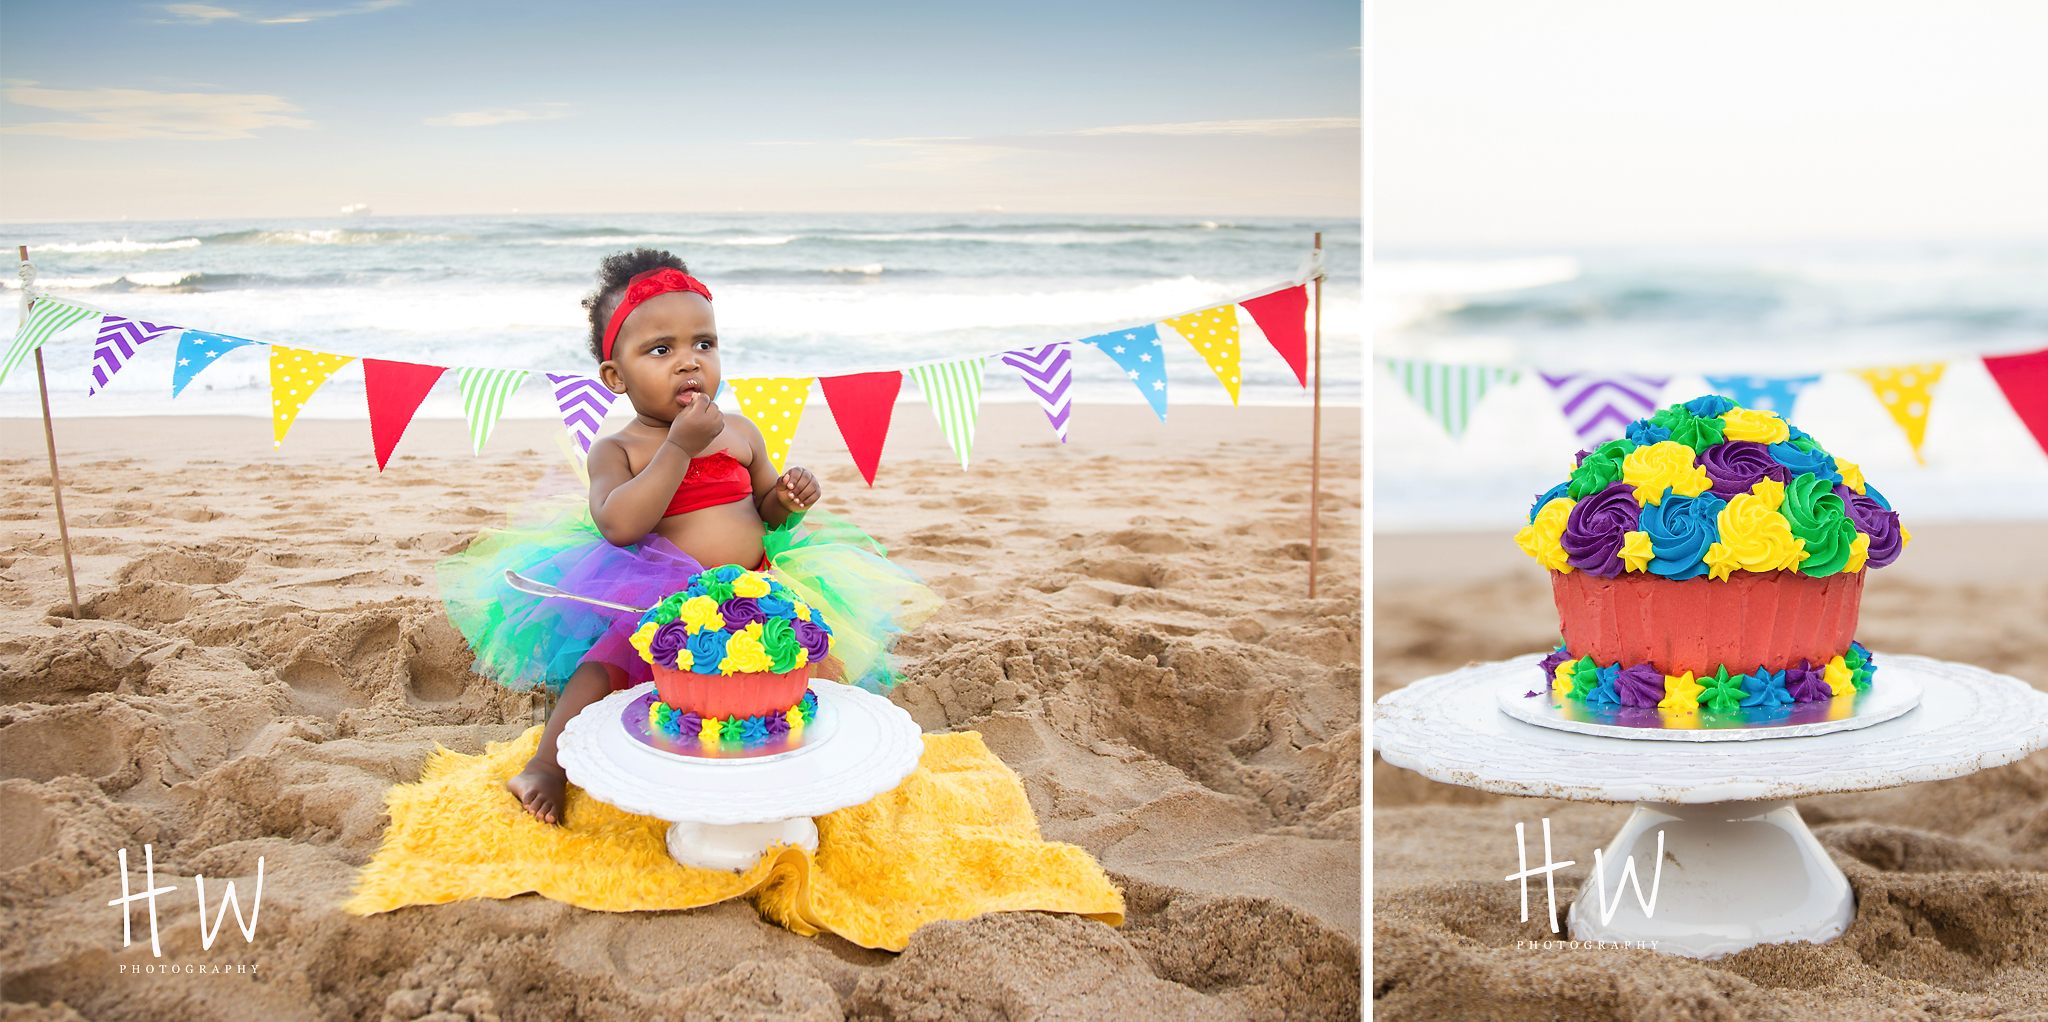 006-hayley-walker-photography-hillcrest-durban-photographer-family-photoshoot-beach-cakesmash